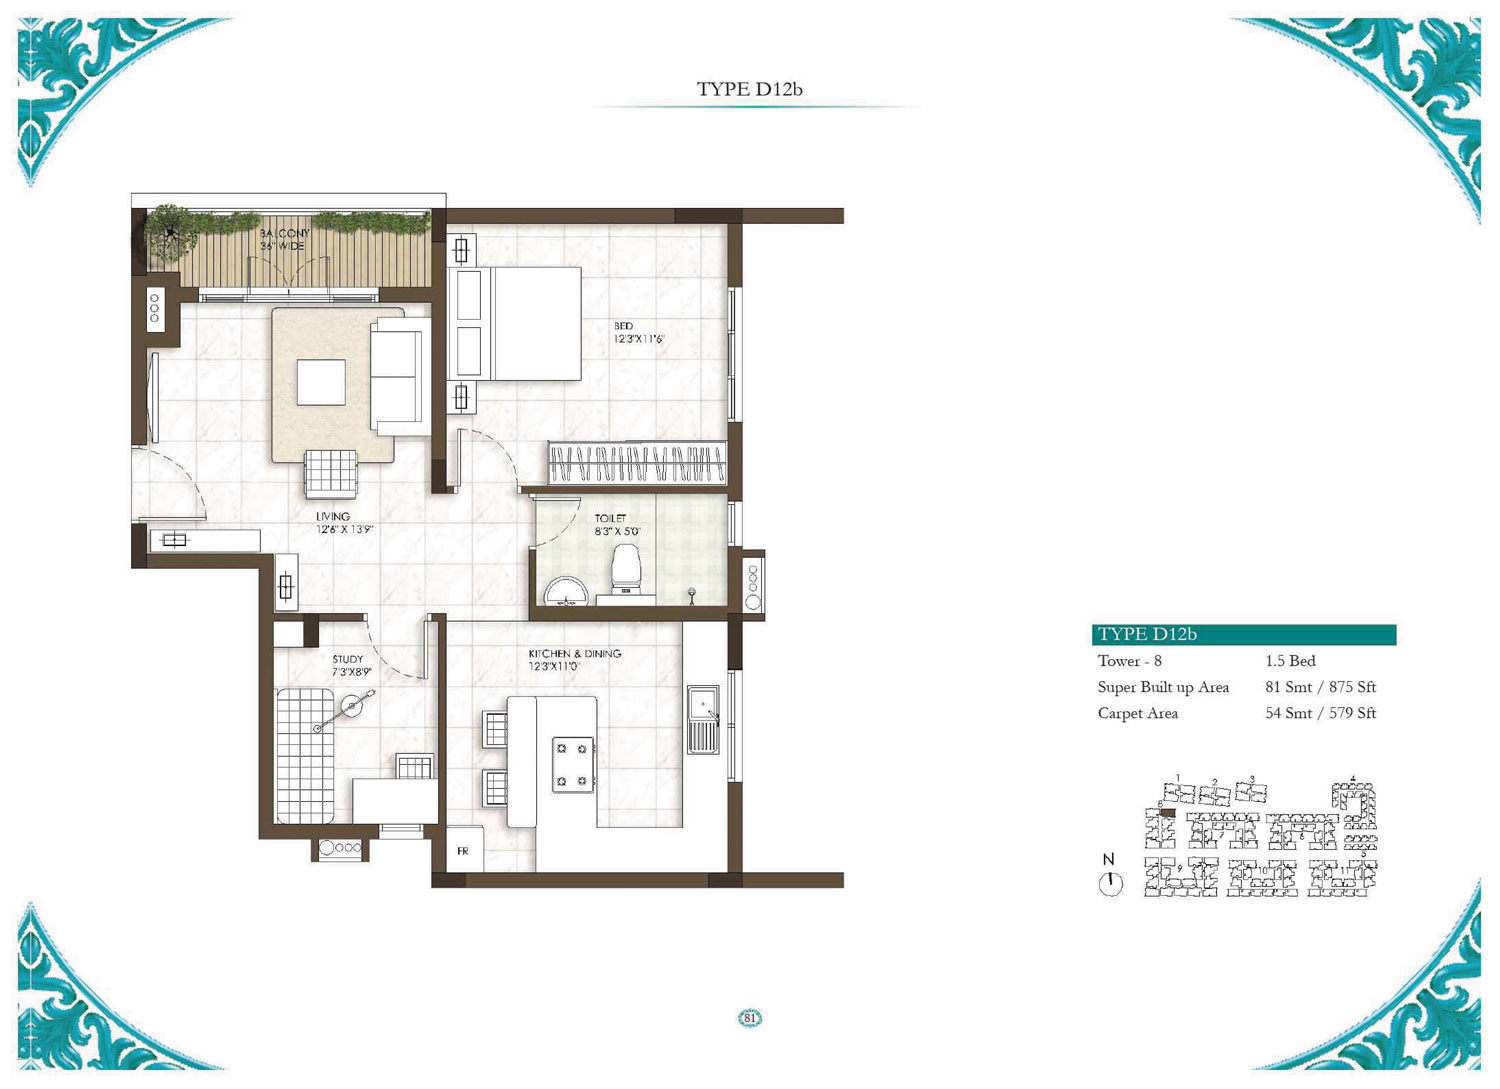 Type D12B - 3 Bed - 875 Sq Ft